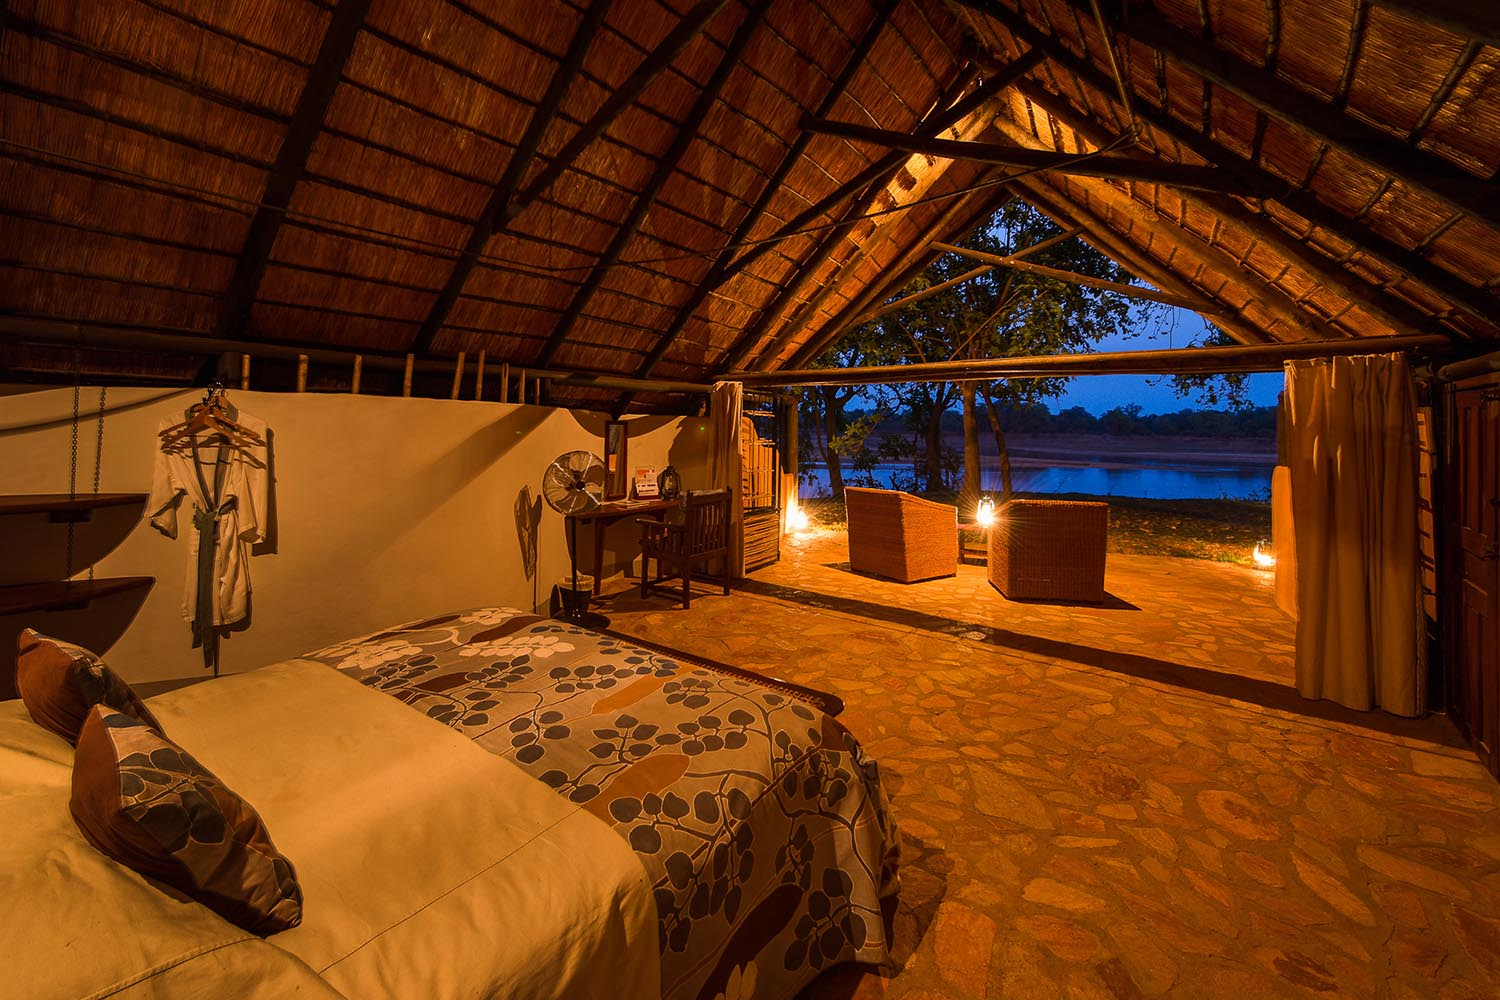 womens-trip-karen-loftus-tours-safaris-malawian-style-malawi-adventures-experiences-holidays-specialist-tour-operator-nkwali-camp-south-luangwa-bedroom-view